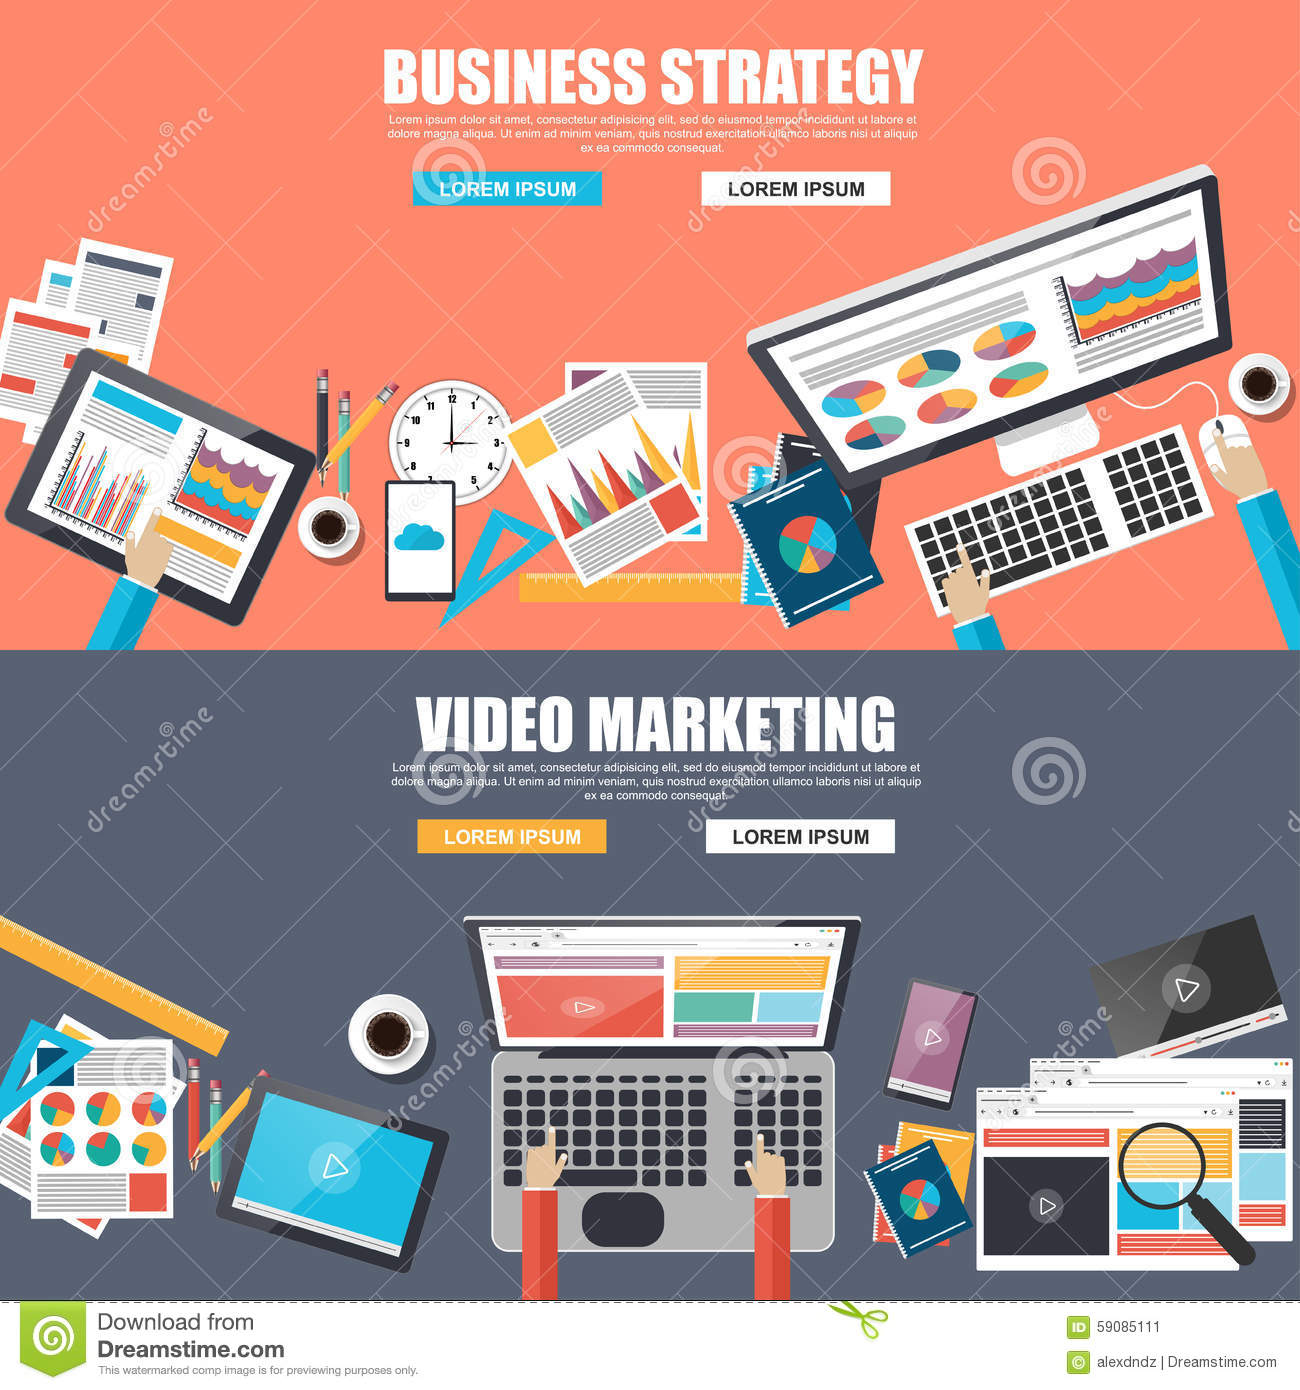 Flat Design Concepts For Business Strategy And Video